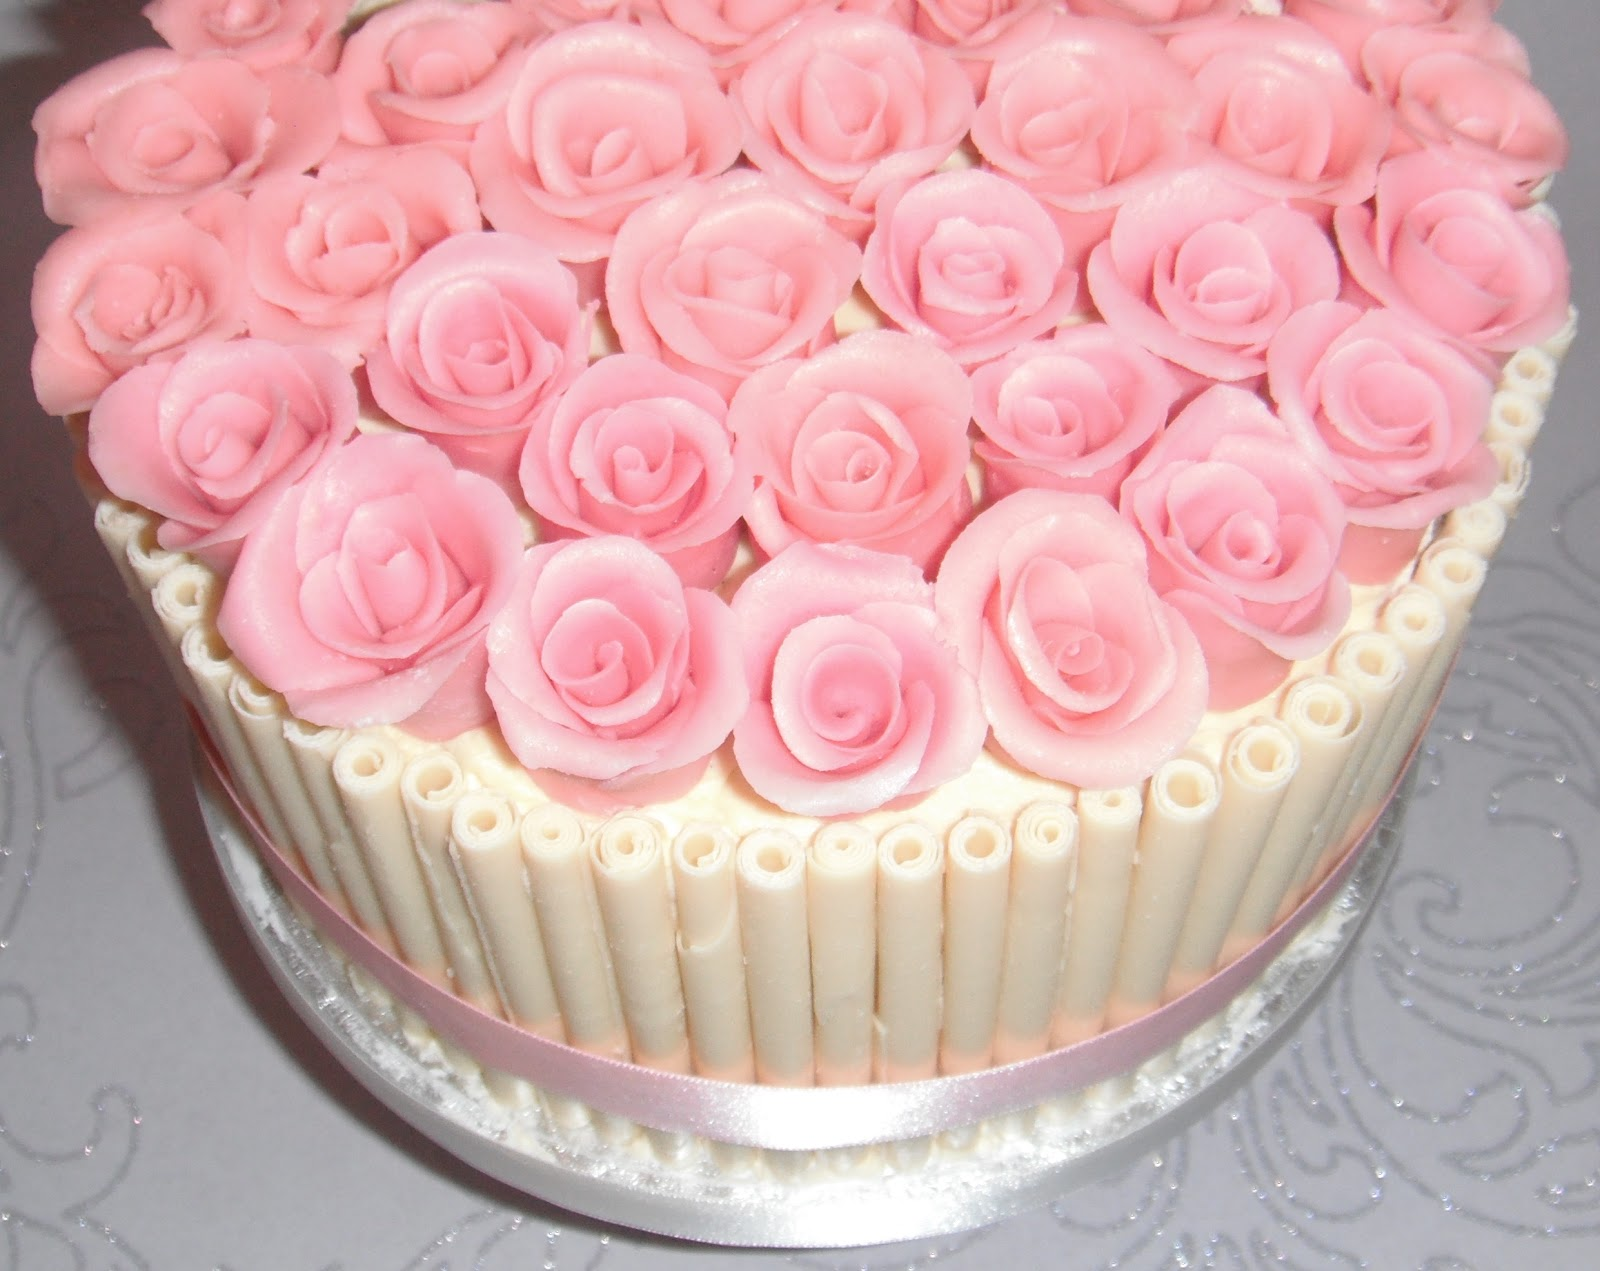 White Chocolate And Pink Roses Birthday Cake